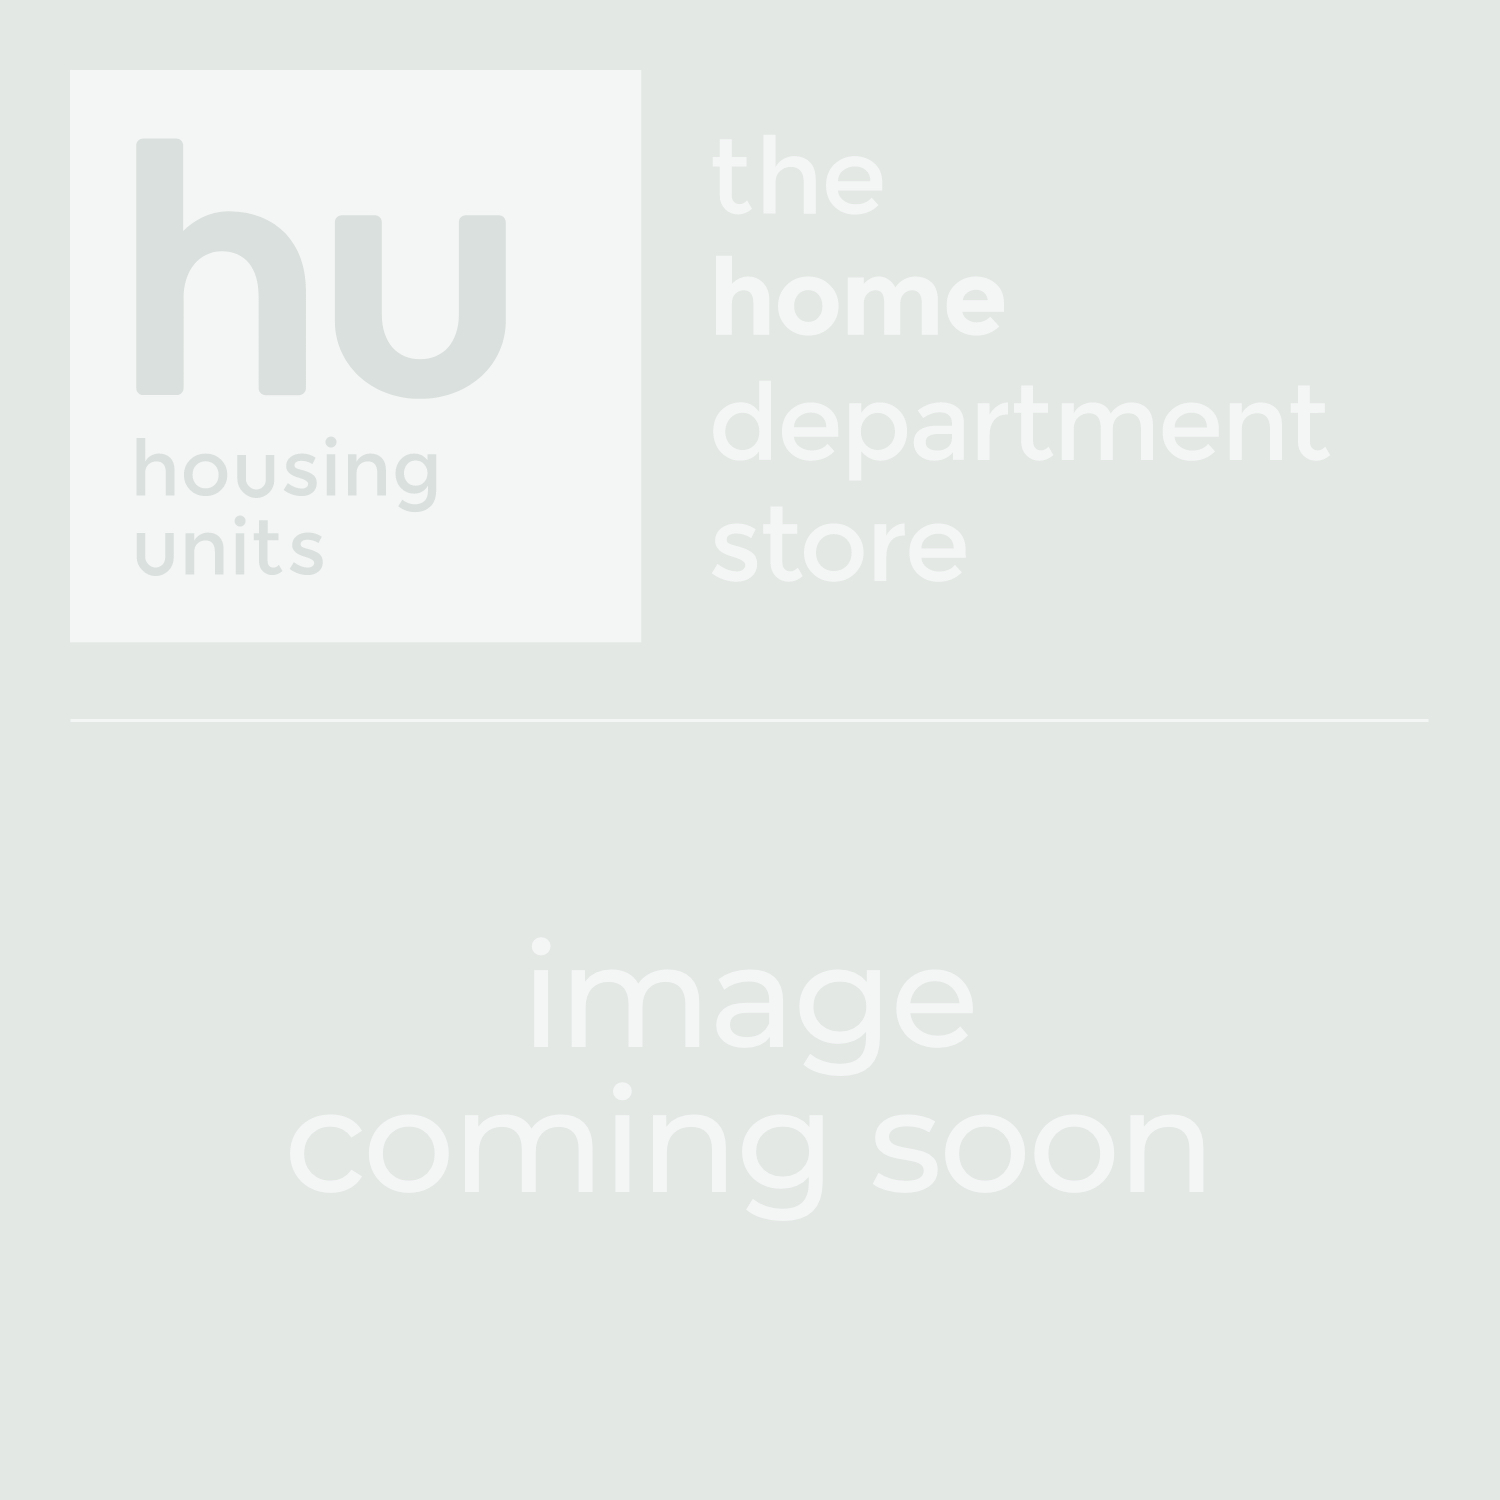 Celsi Ultiflame VR Evora Asencio Wall Mounted Inset Electric Fire - Lifestyle | Housing Units